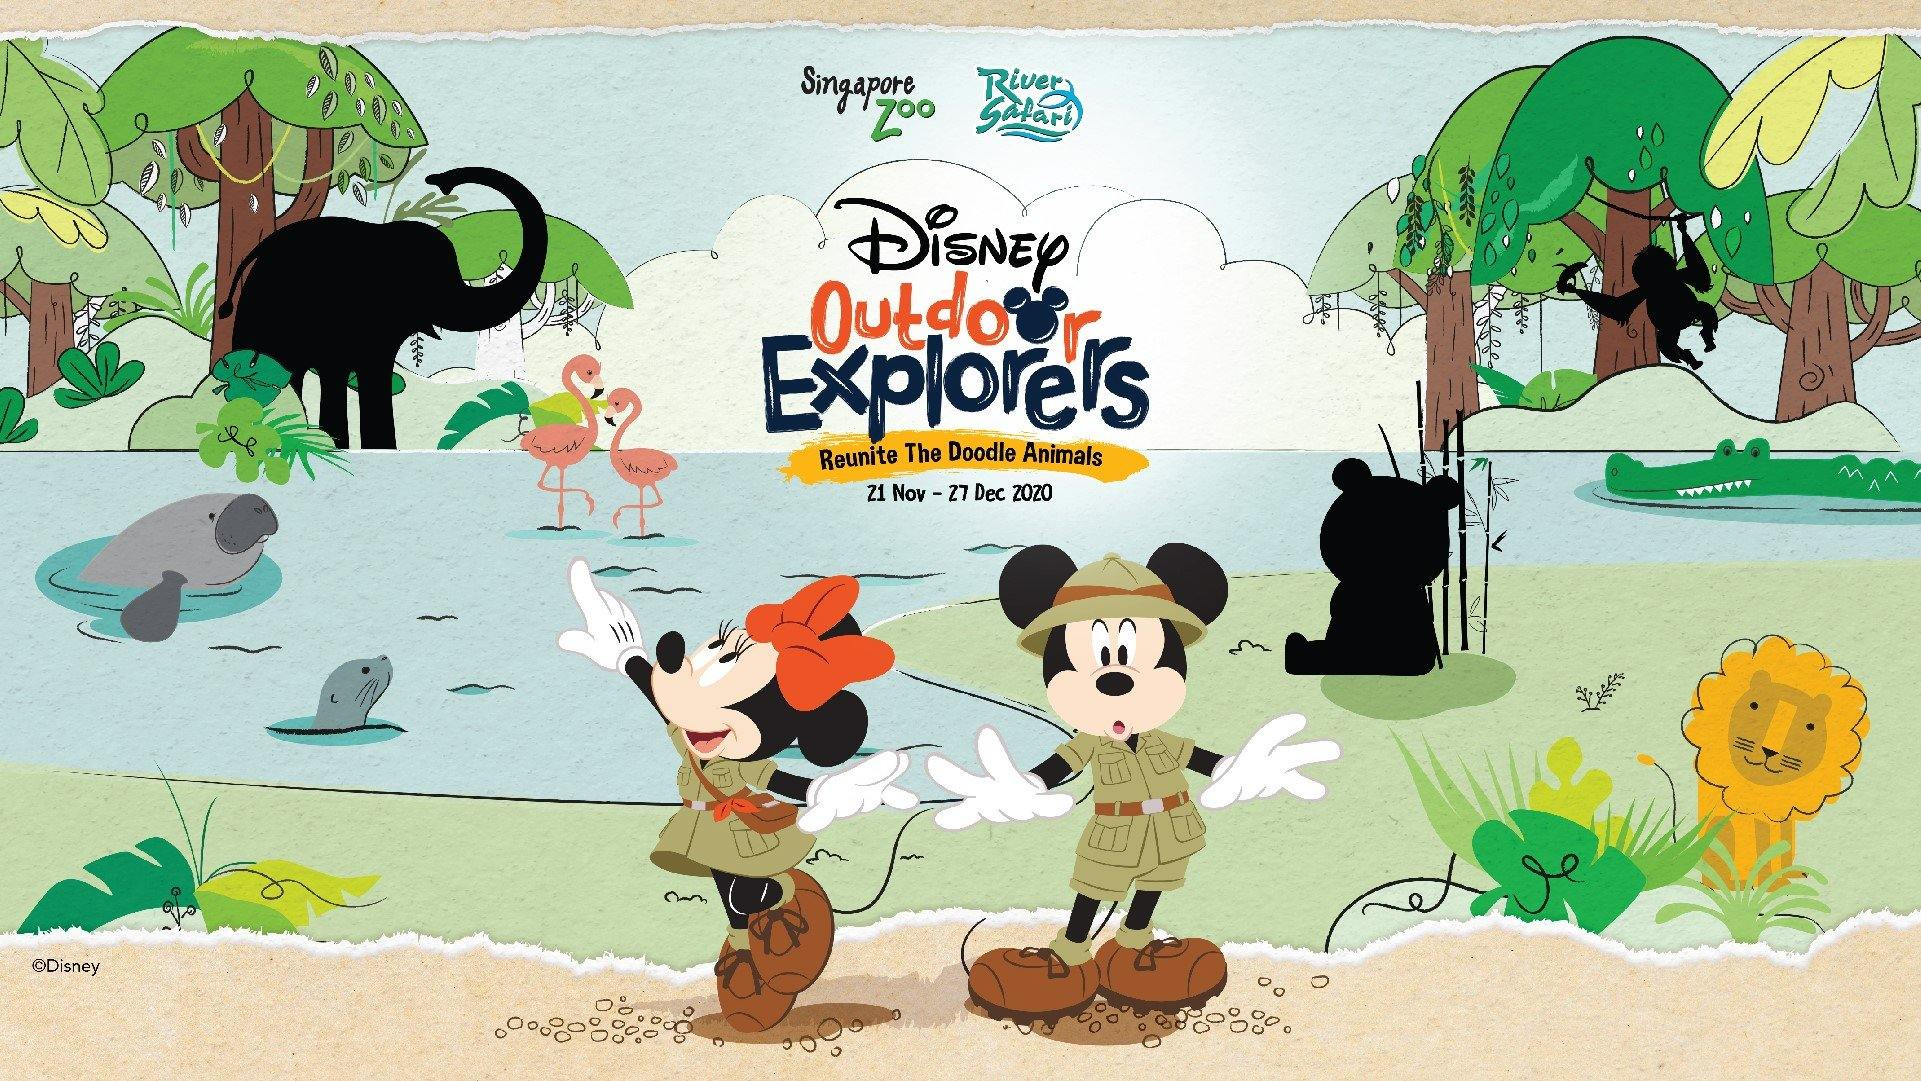 Disney's Mickey Mouse and Minnie Mouse Visits Singapore Zoo and River Safari this School Holidays!